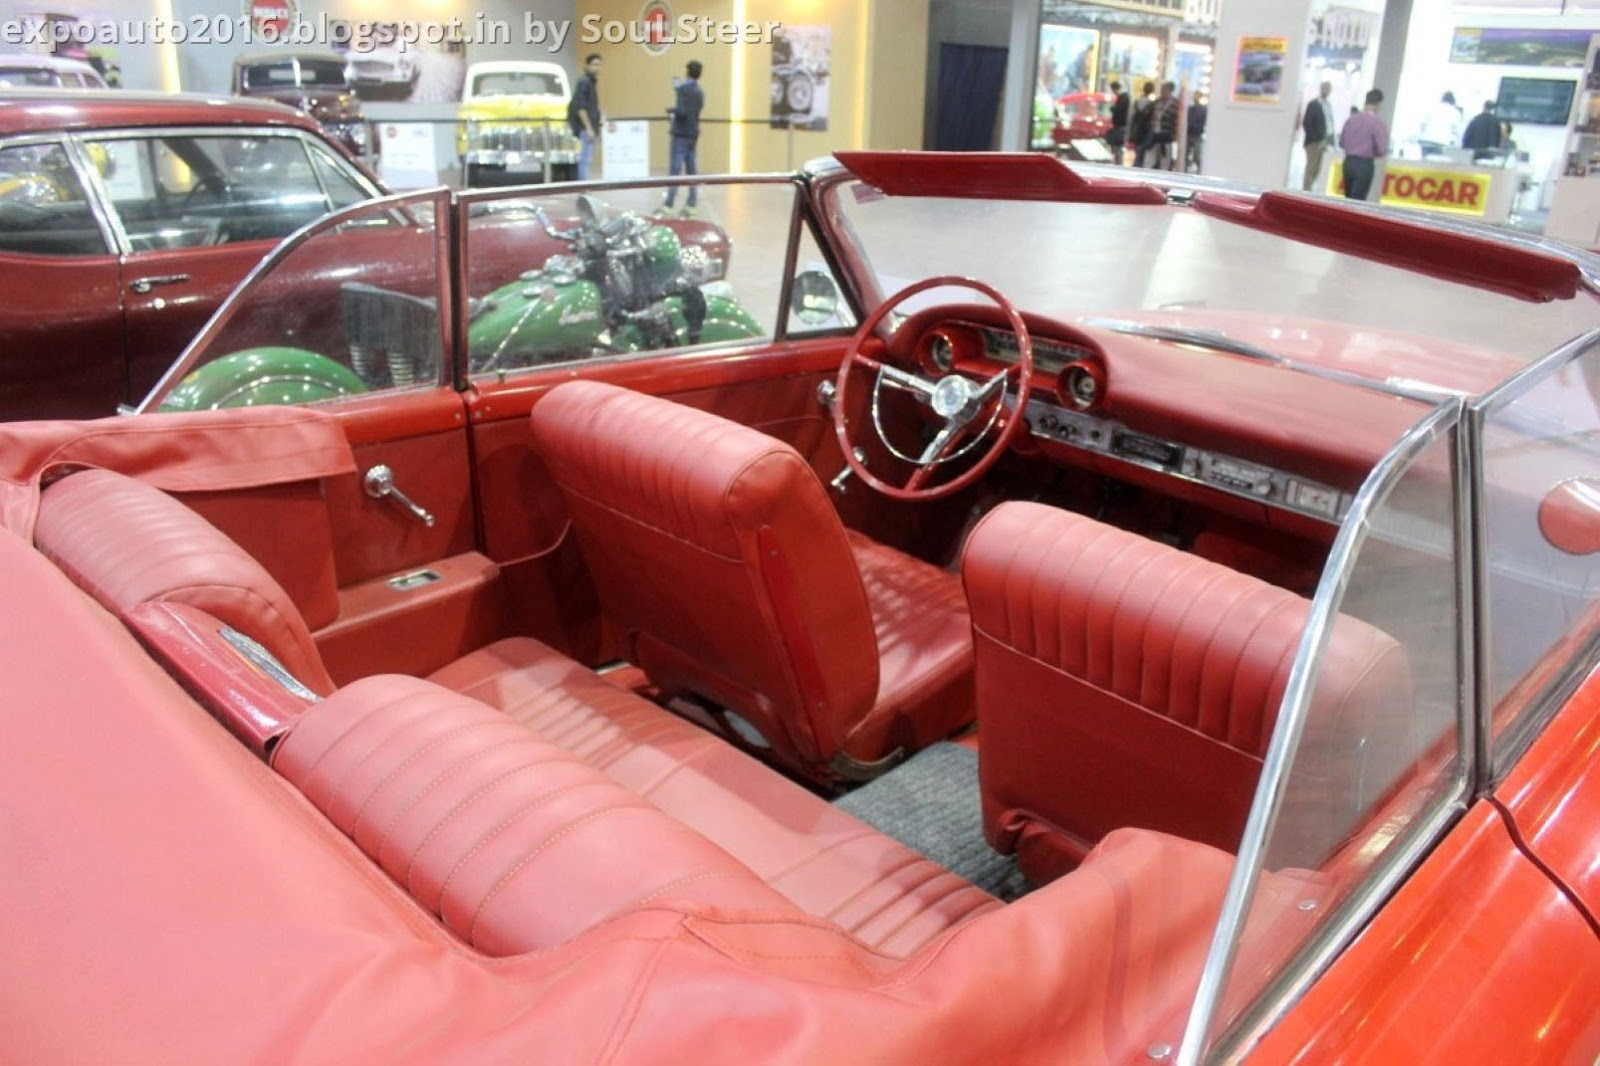 1963 ford galaxie 289 - 1963 Ford Galaxie Convertible Usf 4018 Owned By Ved Prakash